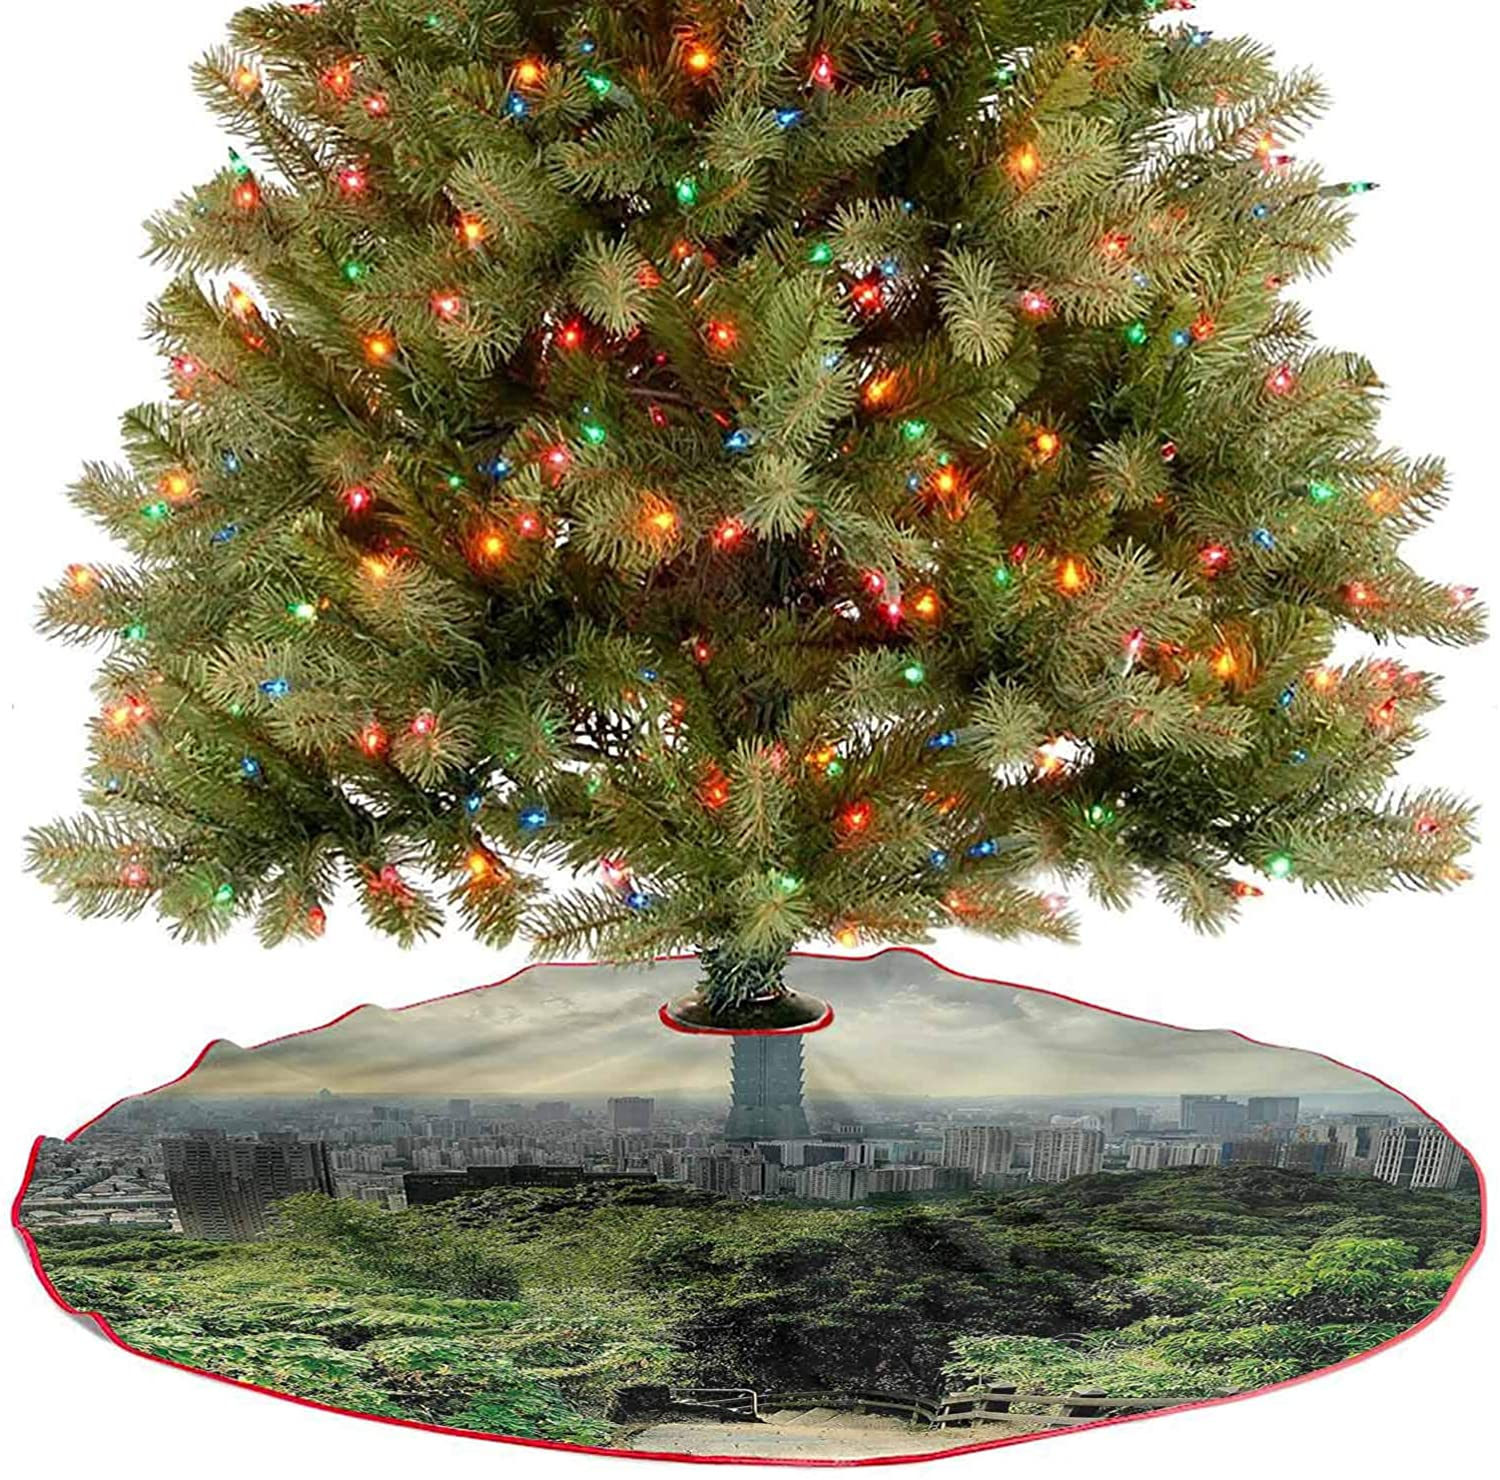 ThinkingPower Tree Skirt Dramatic Cityscape Taipei Christmas Holiday Party Decoration Perfect for Your Holiday Decor Diameter - 30 Inch